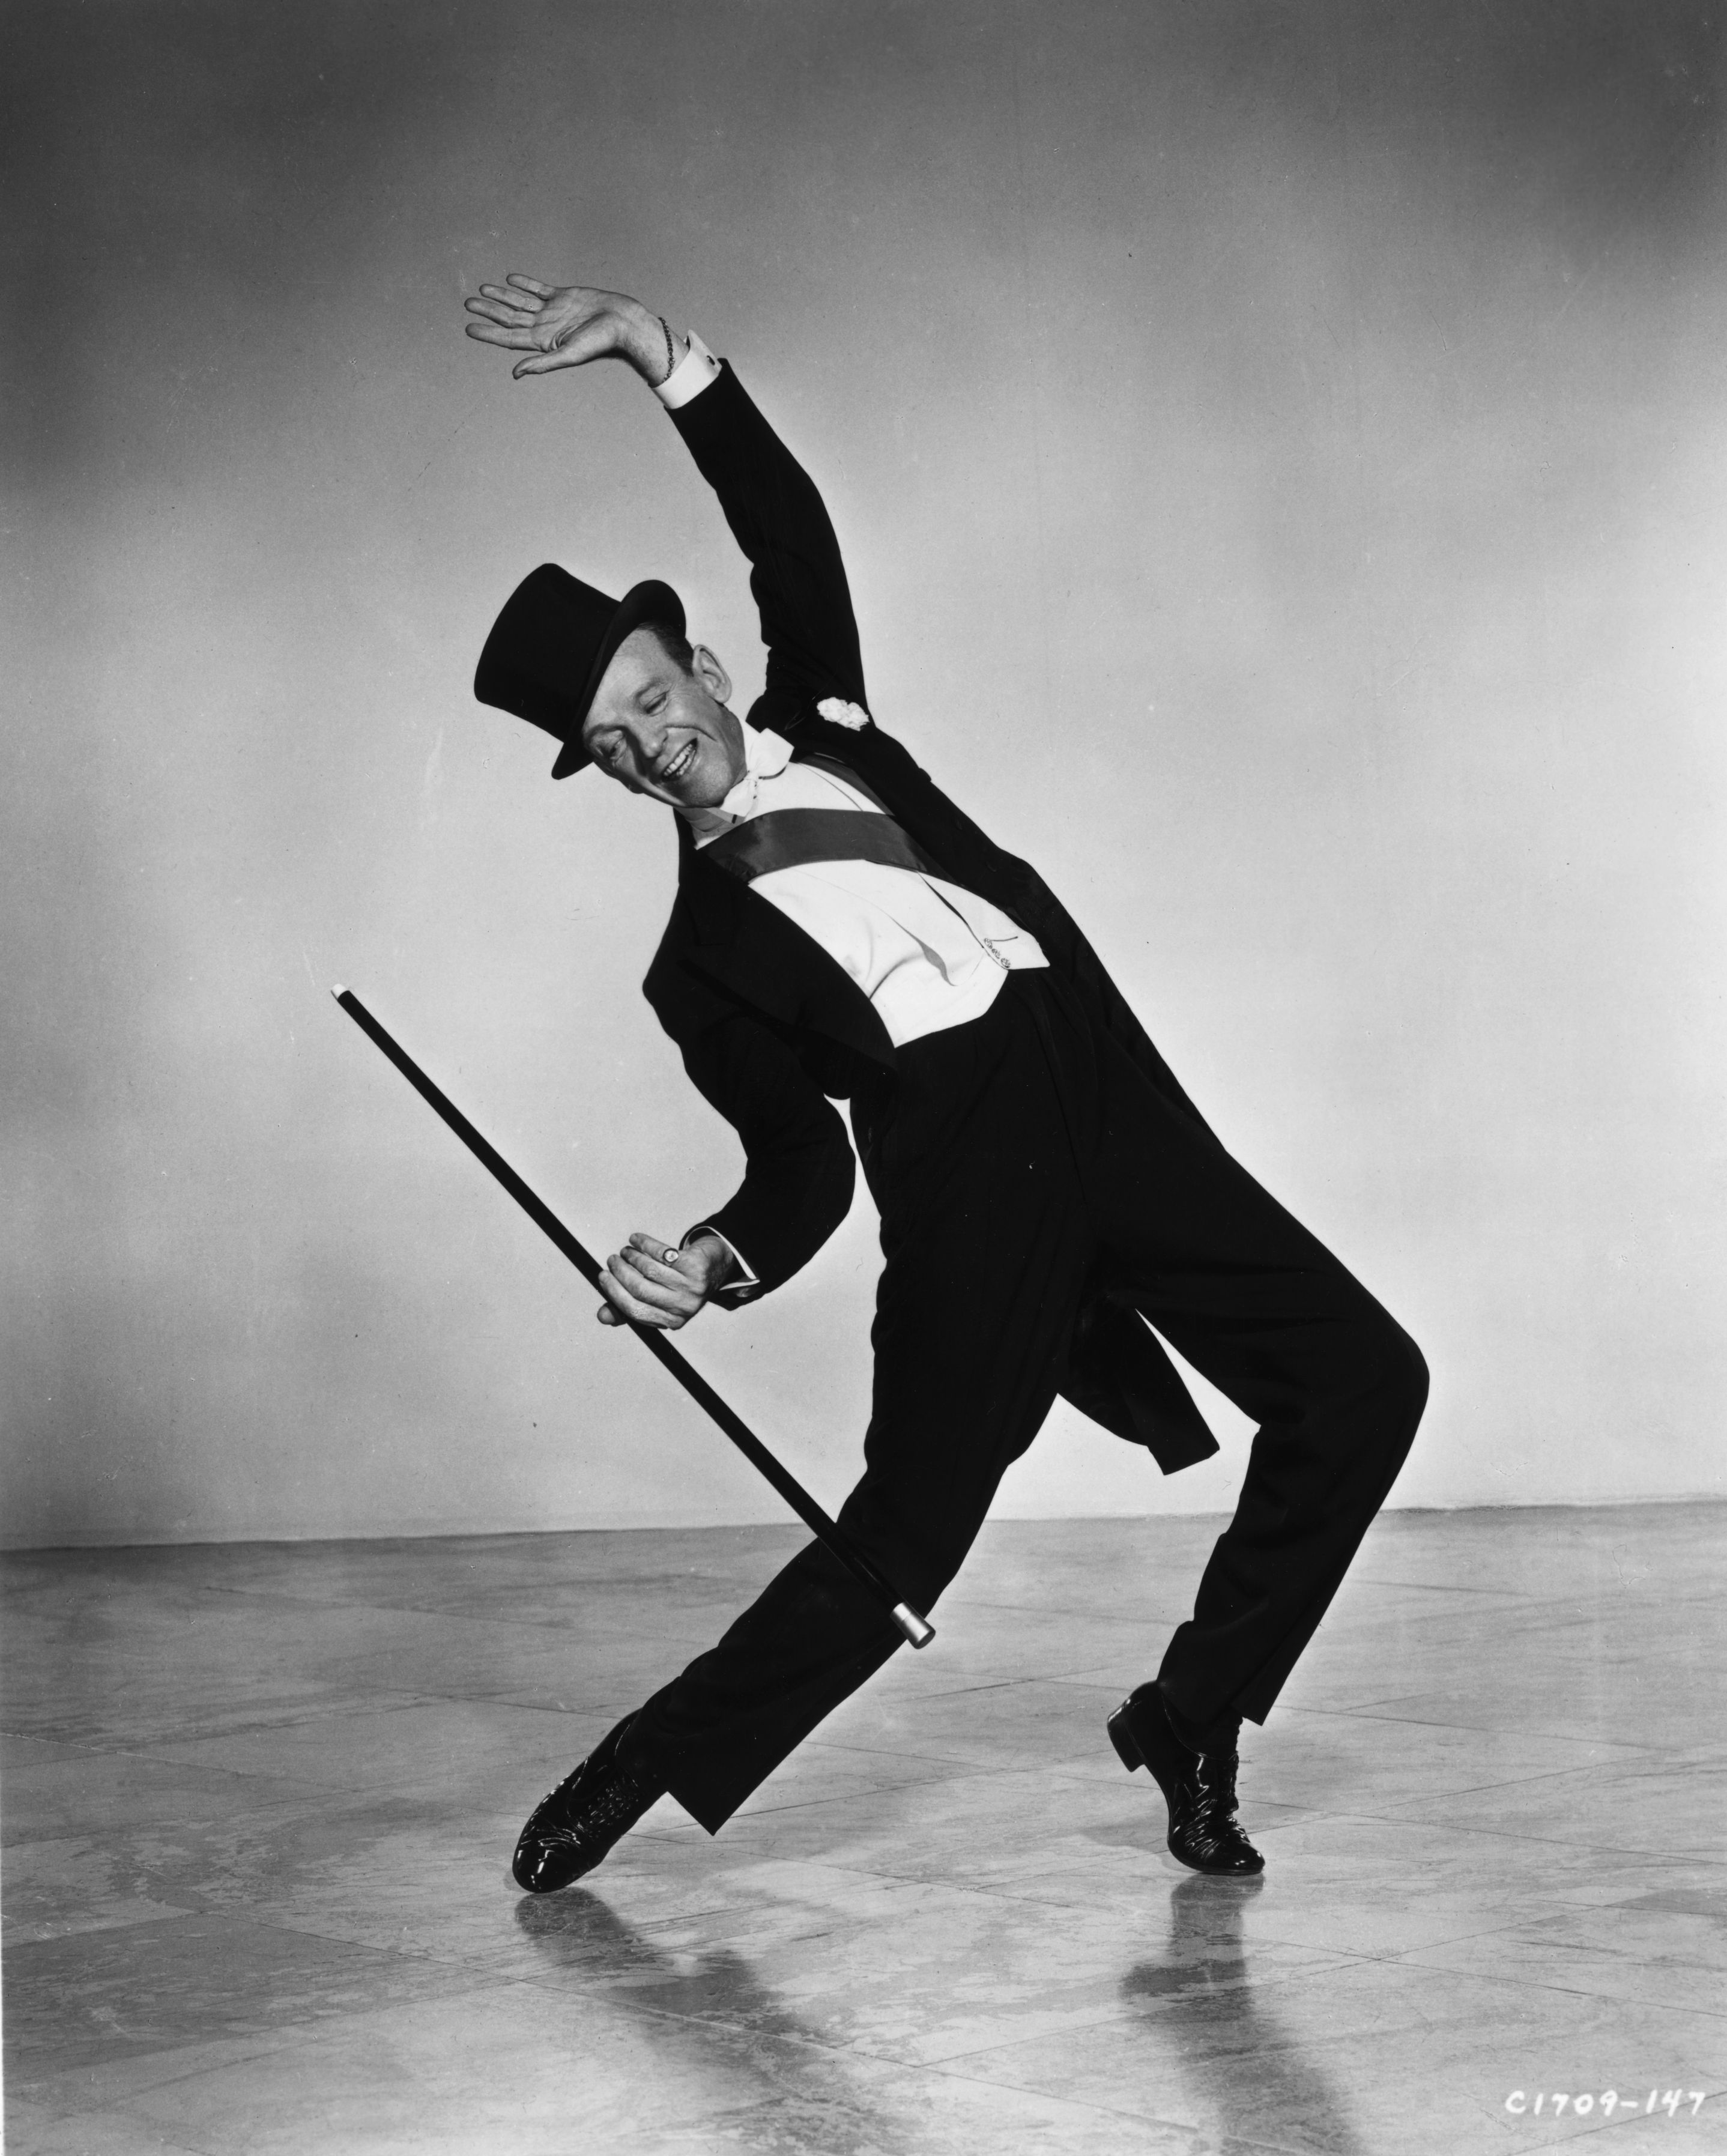 Fred Astaire, Actor/Dancer. Omaha, NE.